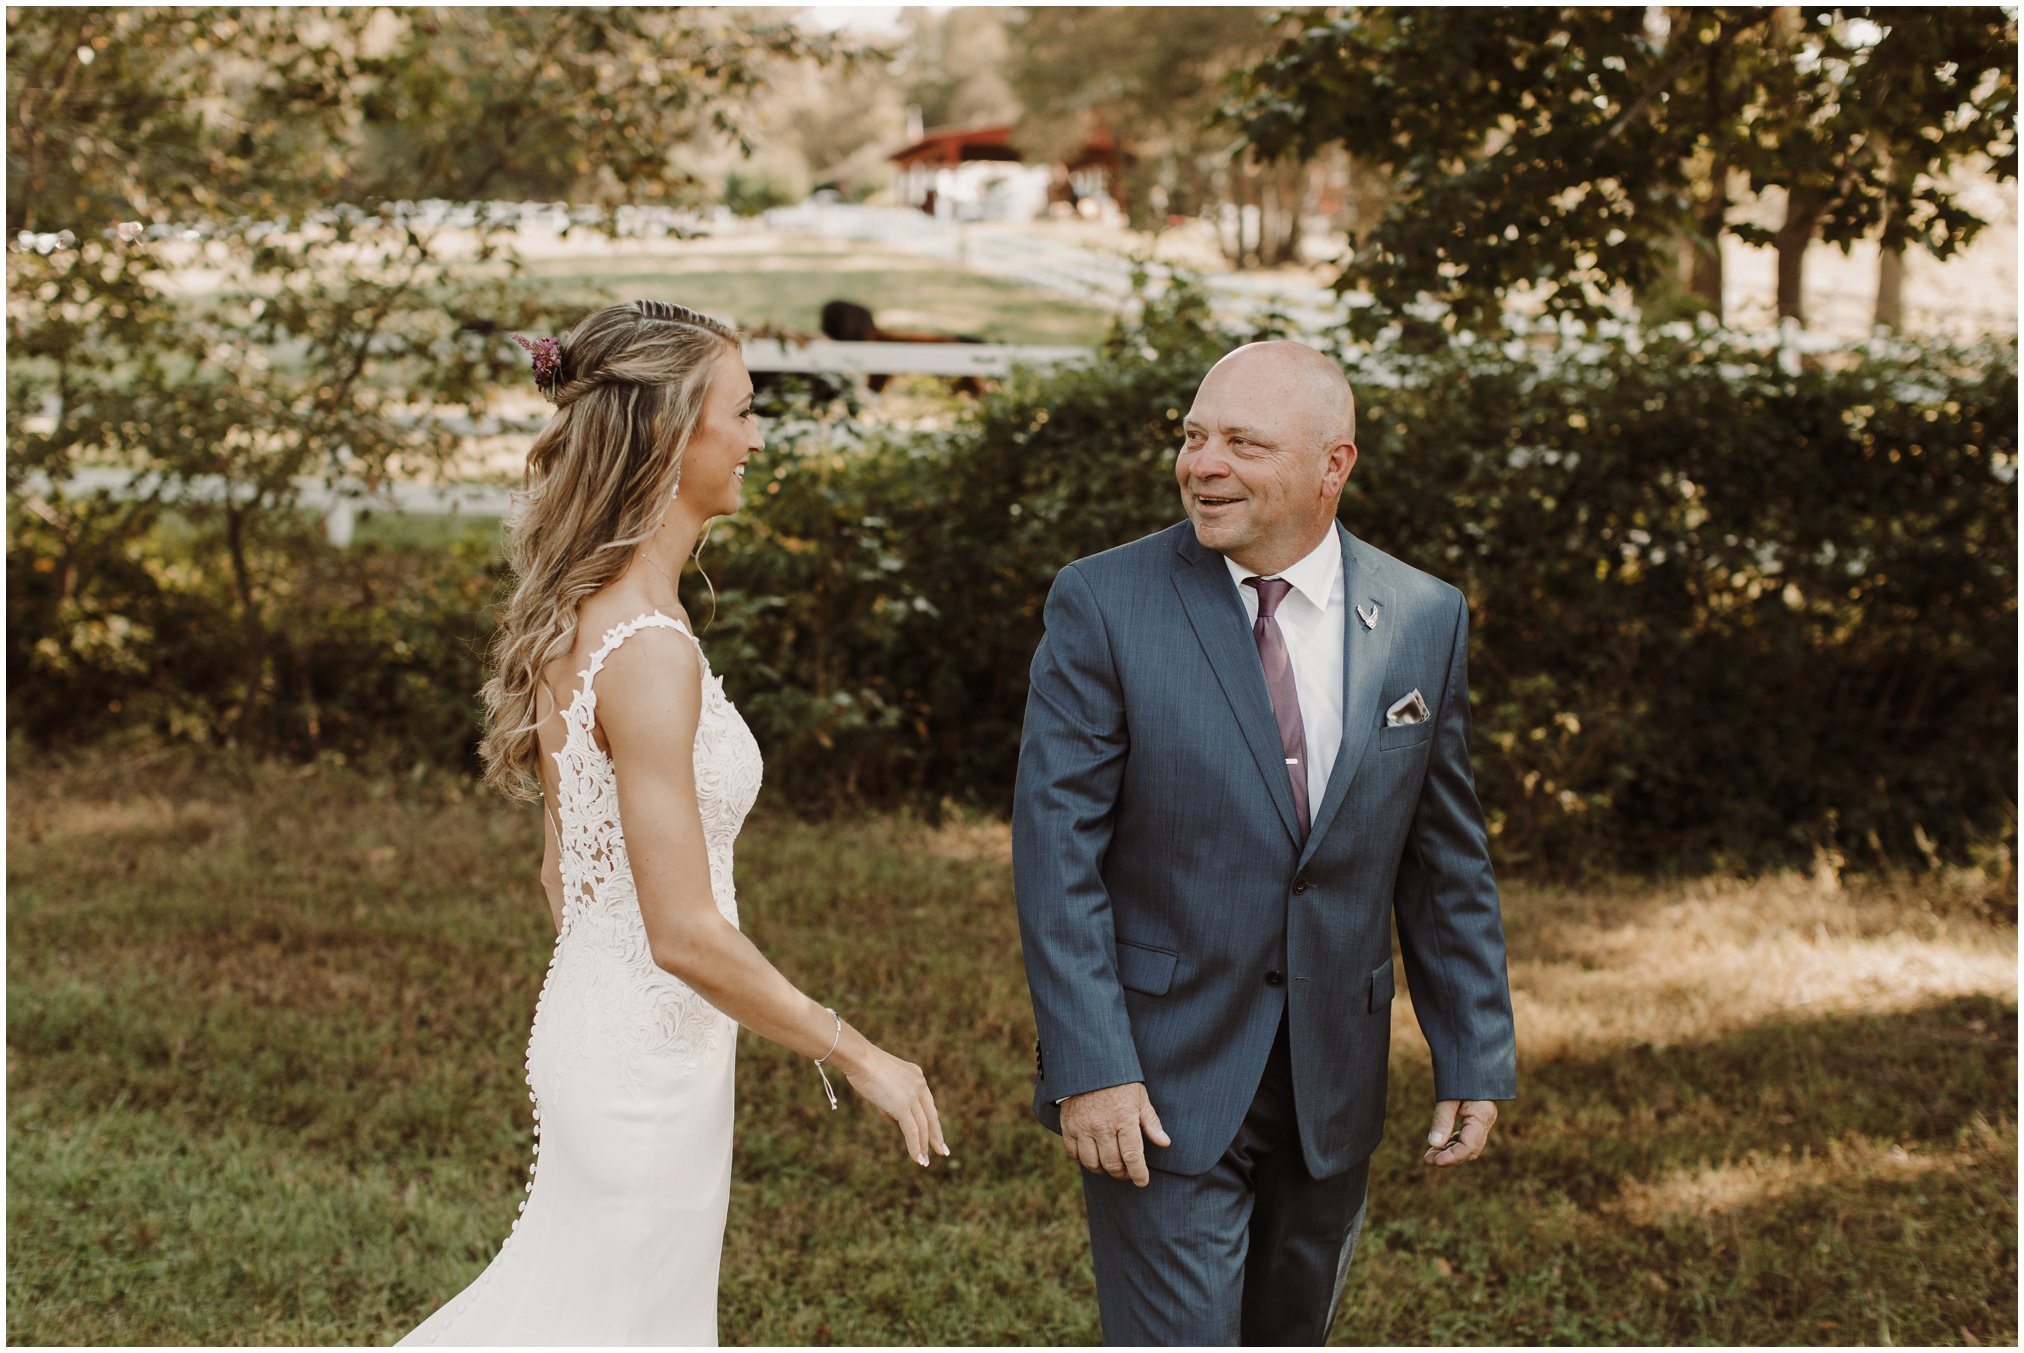 Annapolis Wedding Photographer, Kate Ann Photography, Timberlake Farm, Timberlake Farm Wedding, Annapolis Bride, Father Daughter First Look